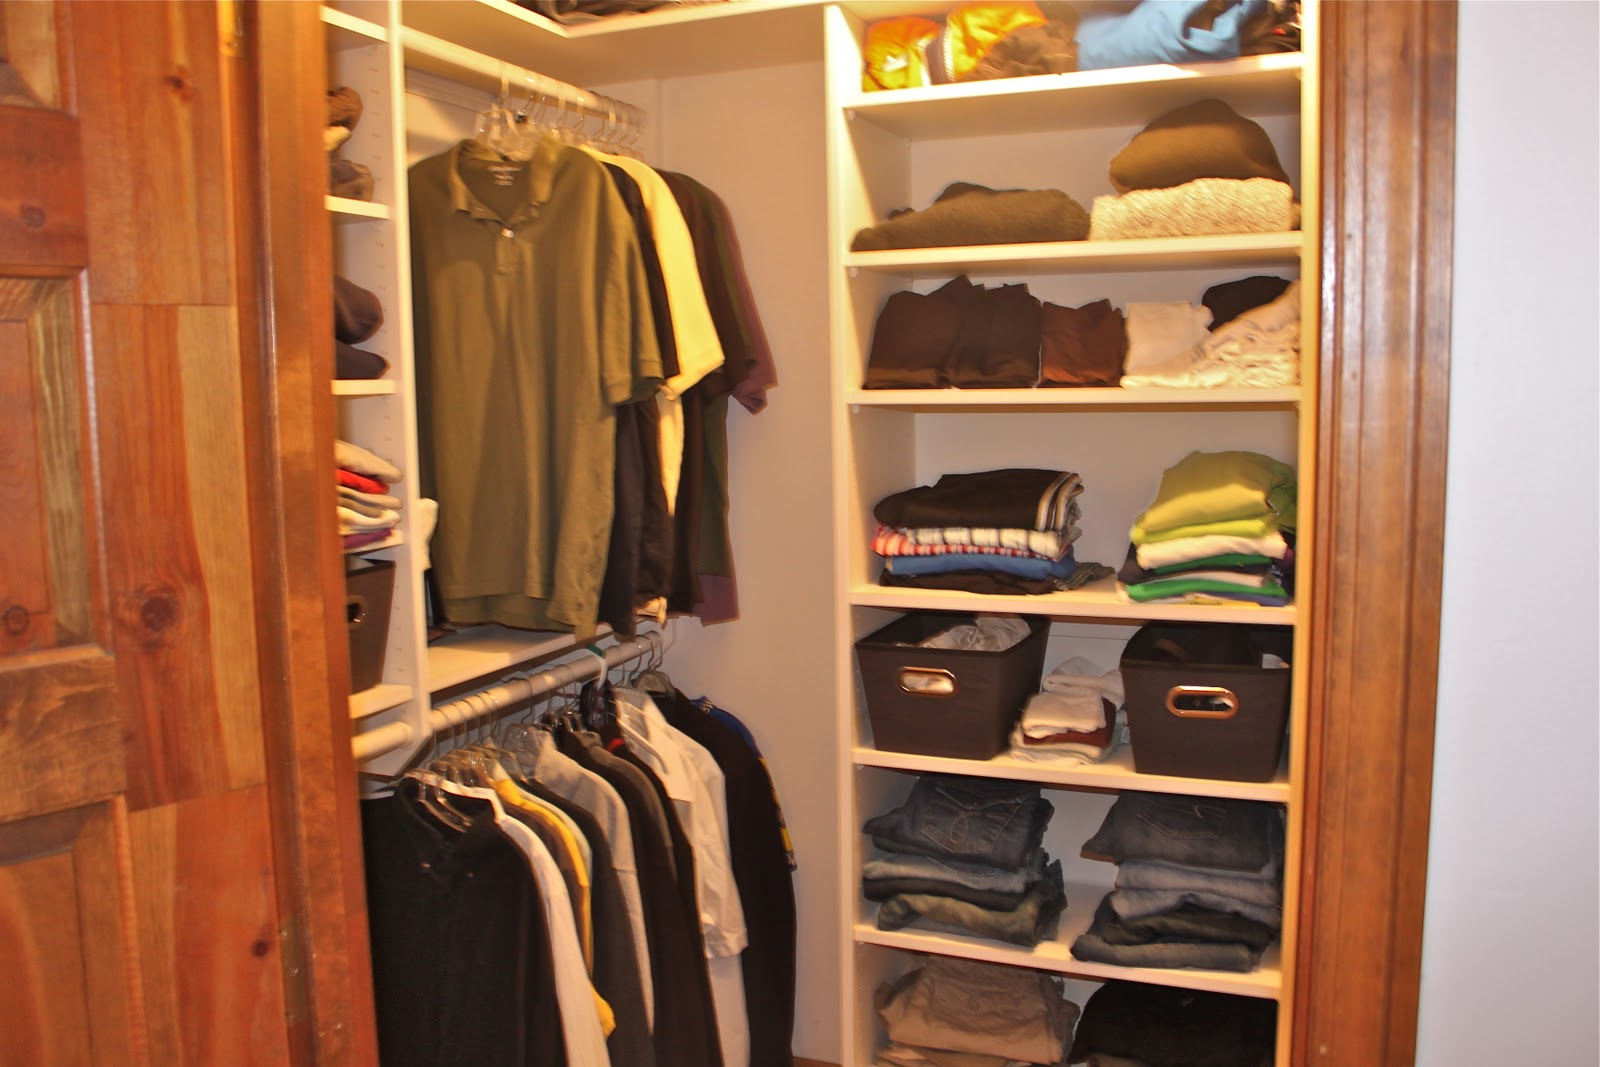 Simple small closet organization tips smart home decorating ideas - Easy Closet Organization Ideas And Simple Walk In Closet With Hanging Rods And Rack Plus Wooden